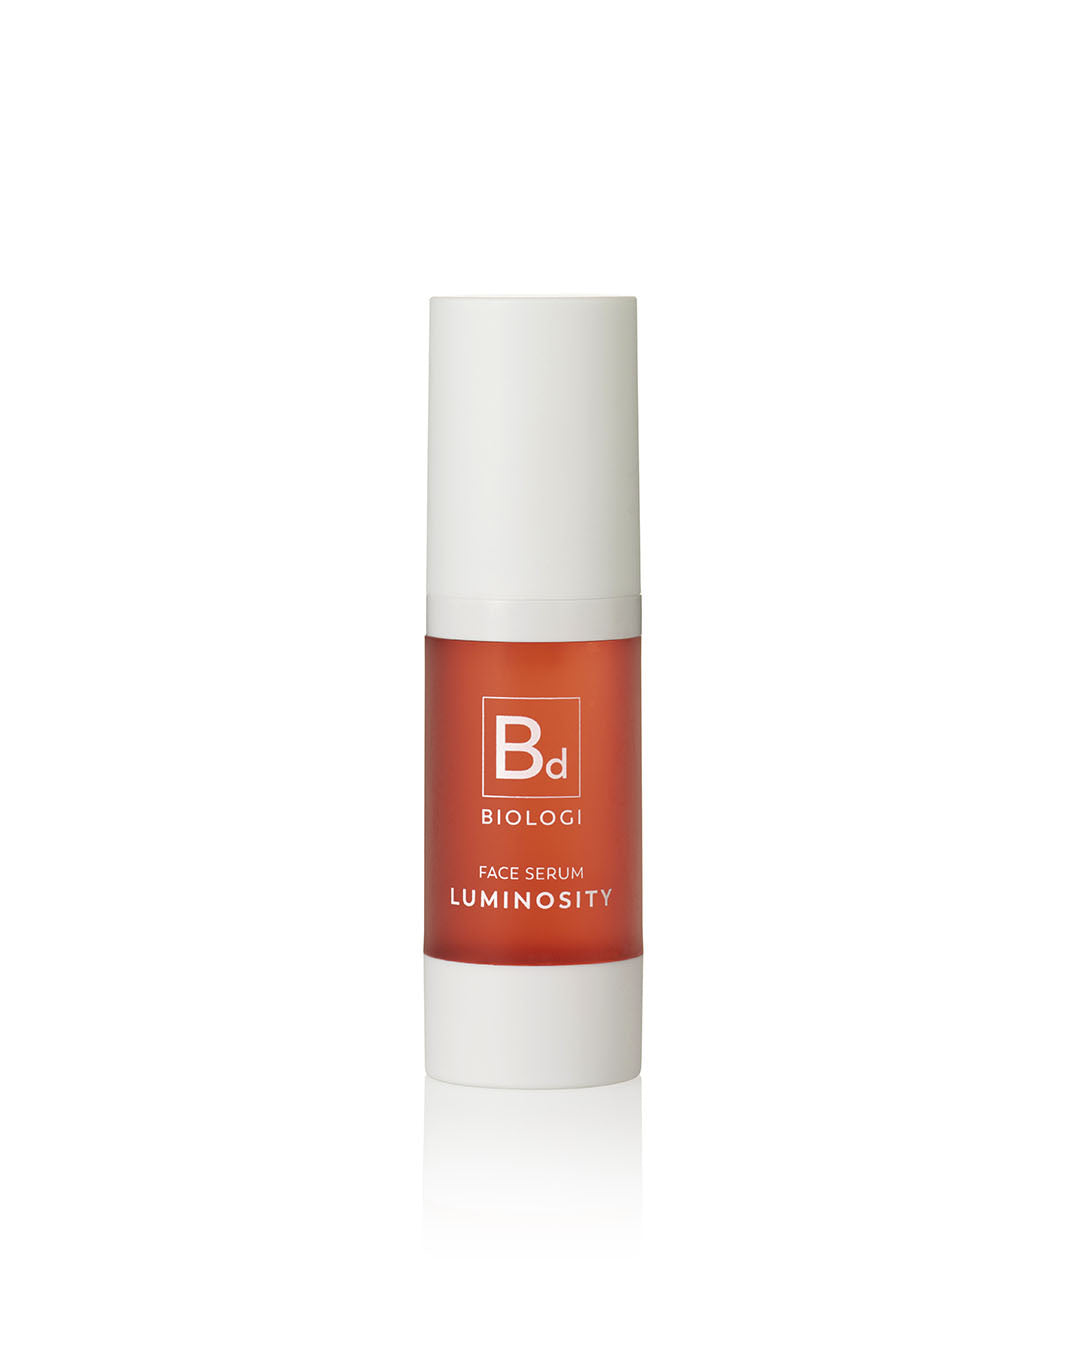 Bd Luminosity Face Serum - Prae Store